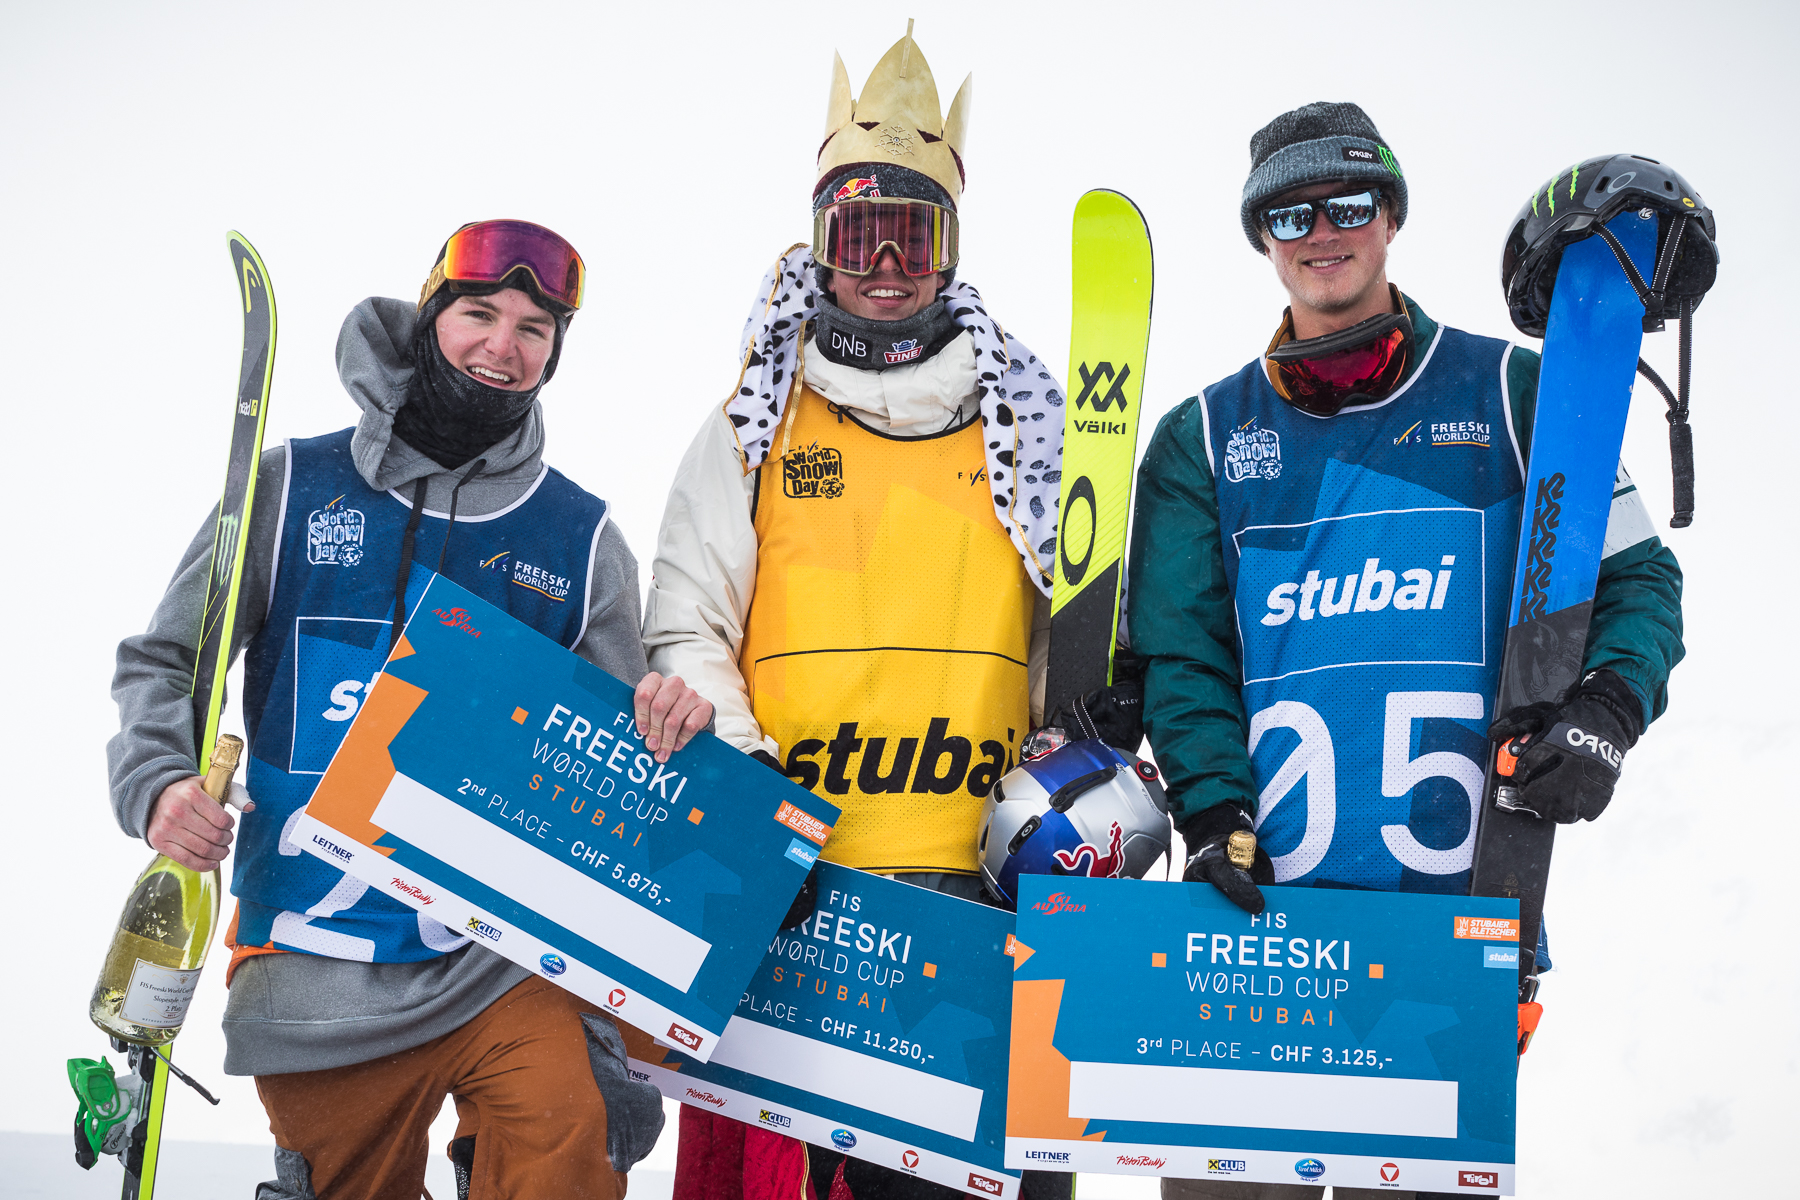 FIS Freeski World Cup Stubai 2017 (foto: Tom Bause)